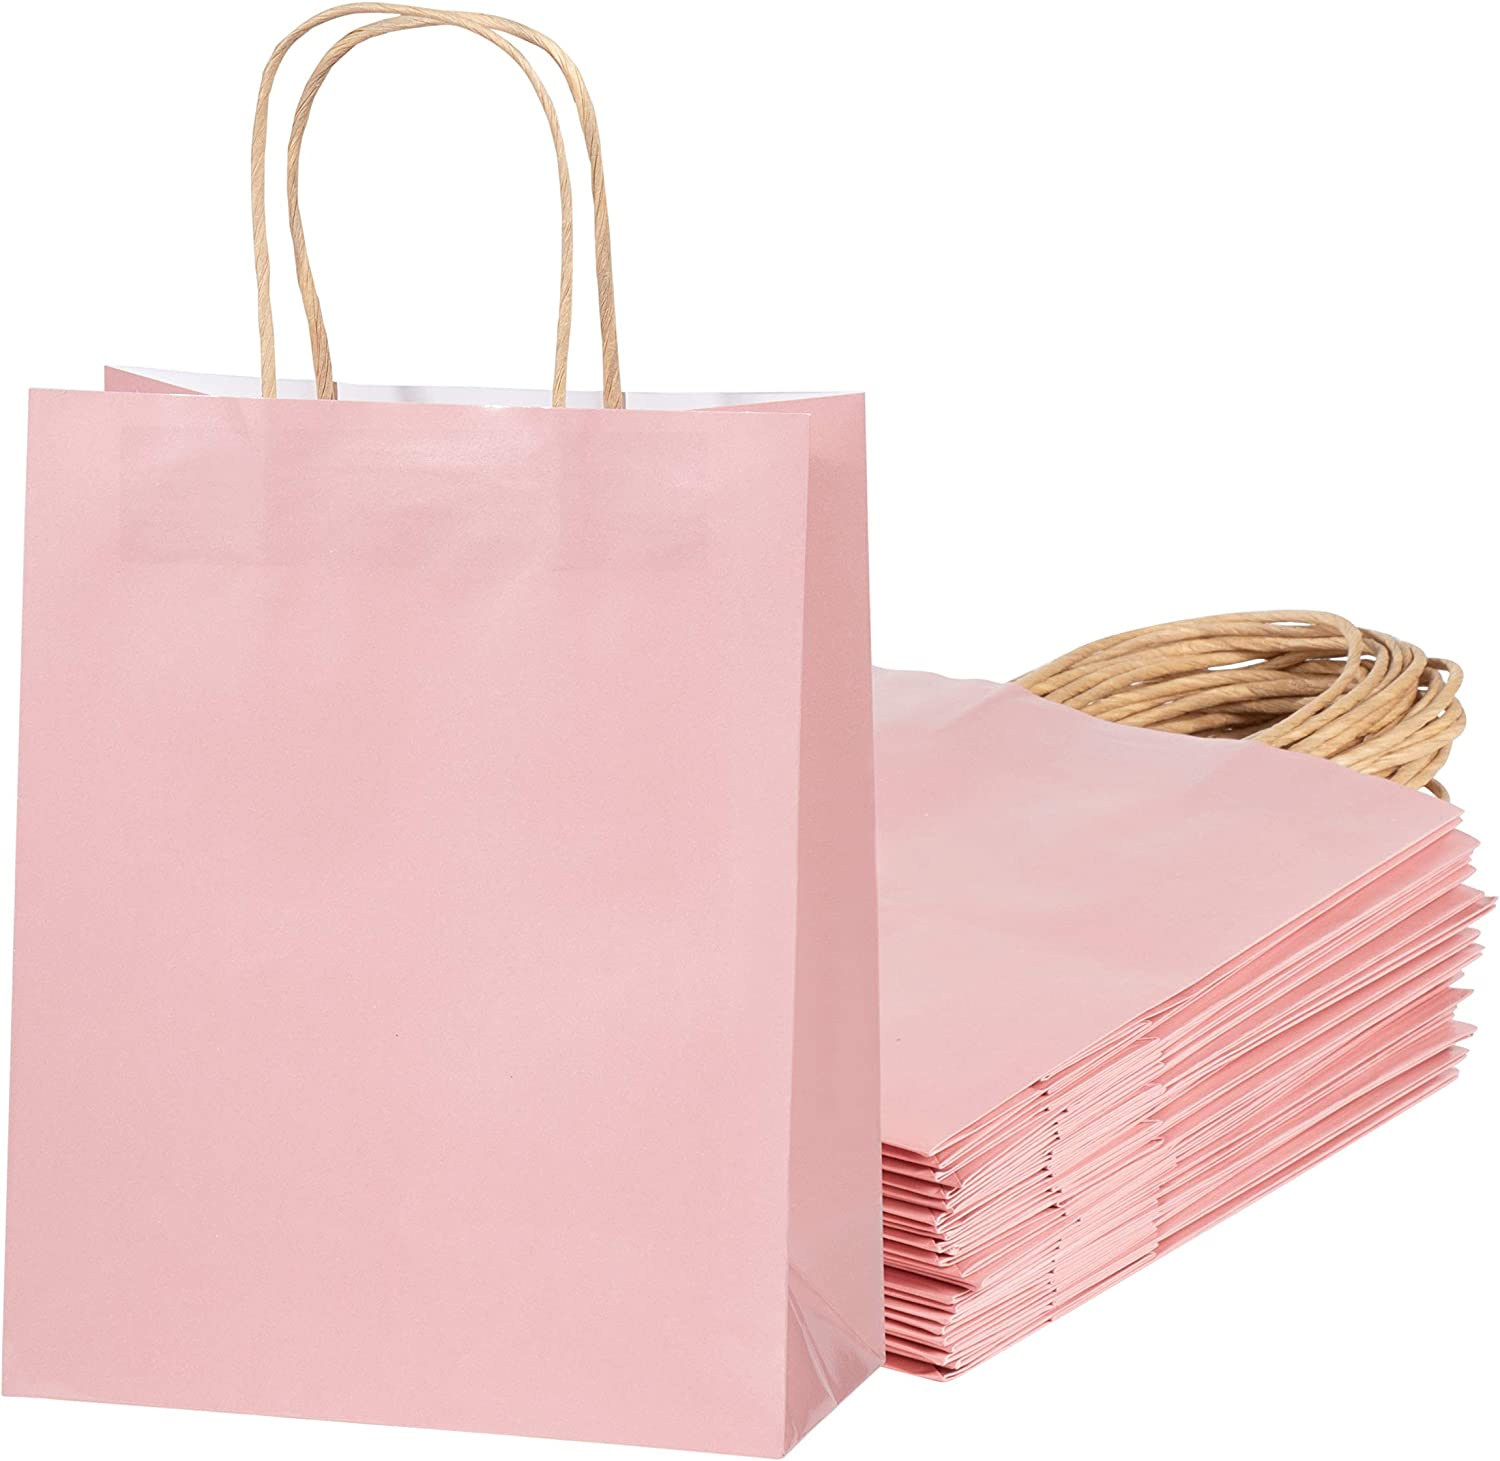 Blush Pink Gift Bags 24 Pack Glossy Pink Paper Bags with Handle, Wedding Welcome Bags, Medium Sized for Retail, Gifts, Birthday, Bridal Shower Party